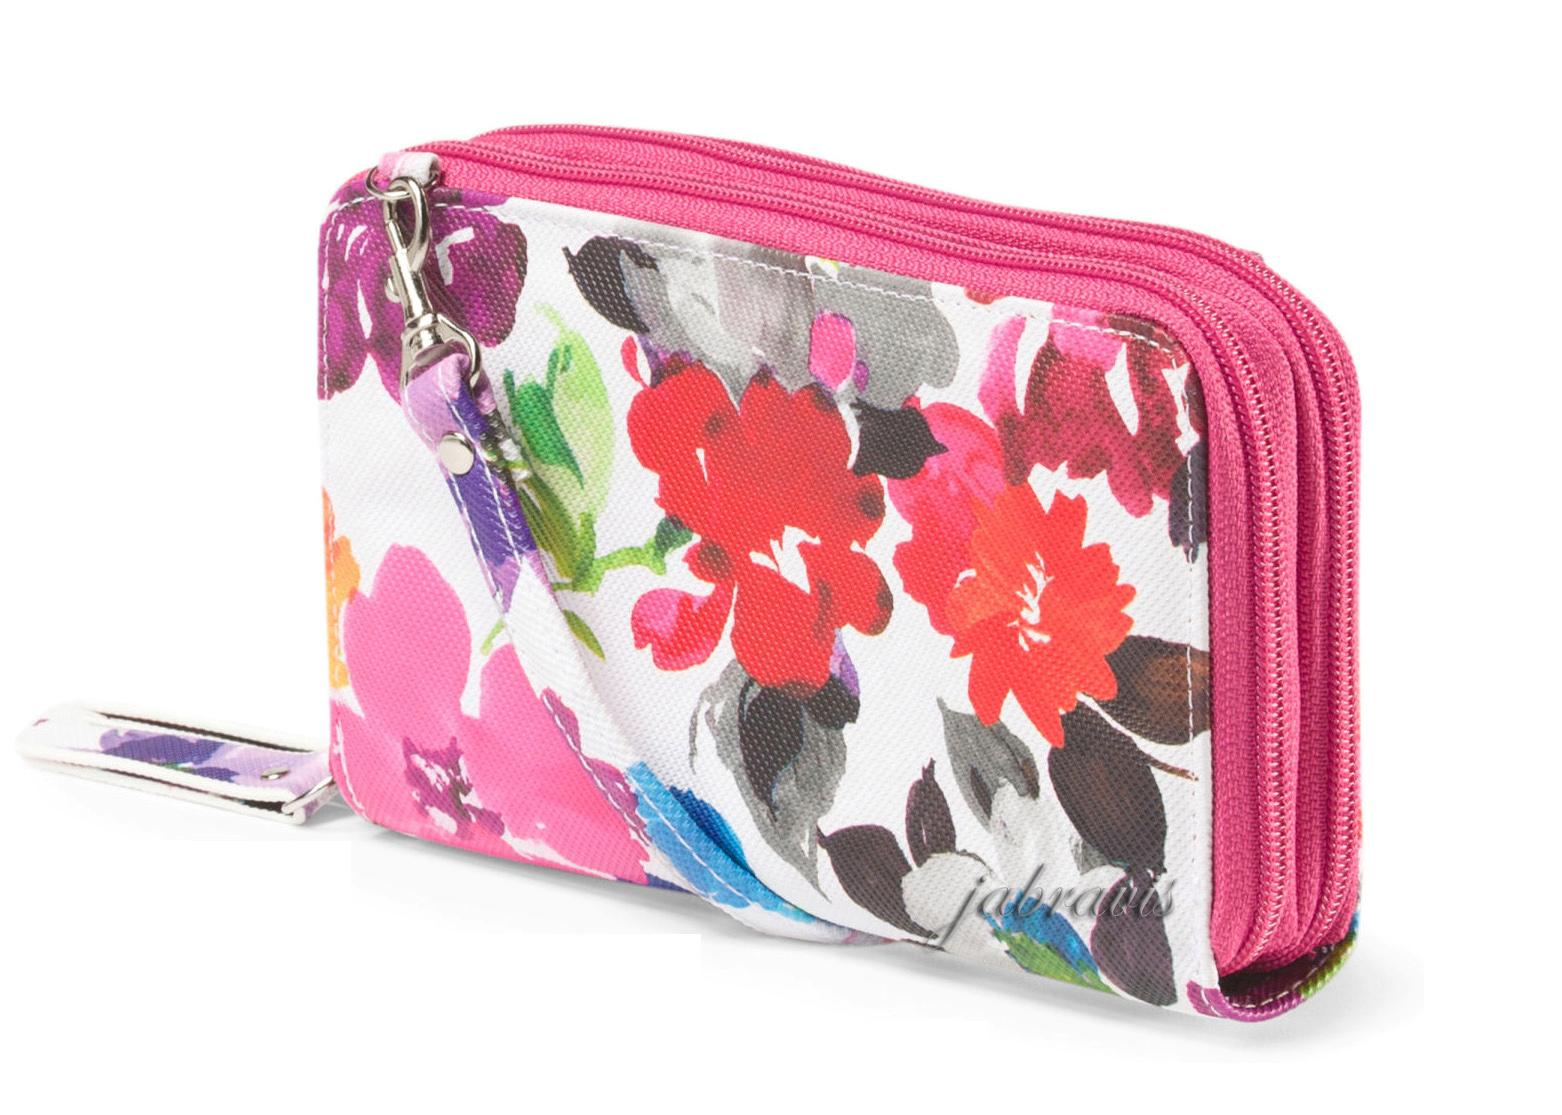 Calvin Klein Large Frame Zip Around Purse Buxton Pink Floral Print Double Zip Organizer Clutch